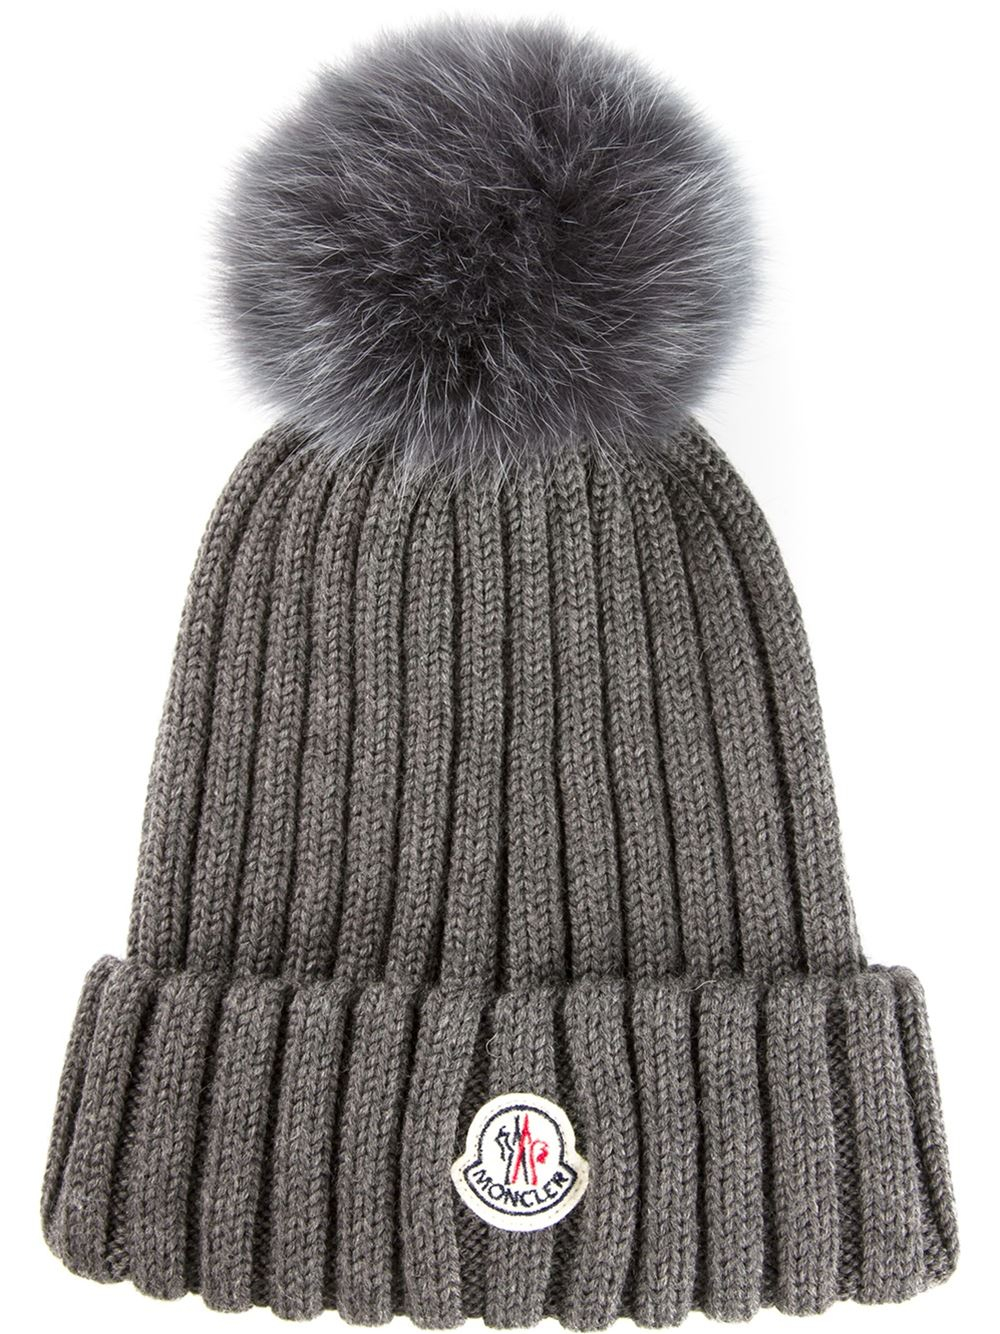 7b67c74d5 Lyst - Moncler Fox Fur Bobble Hat in Gray